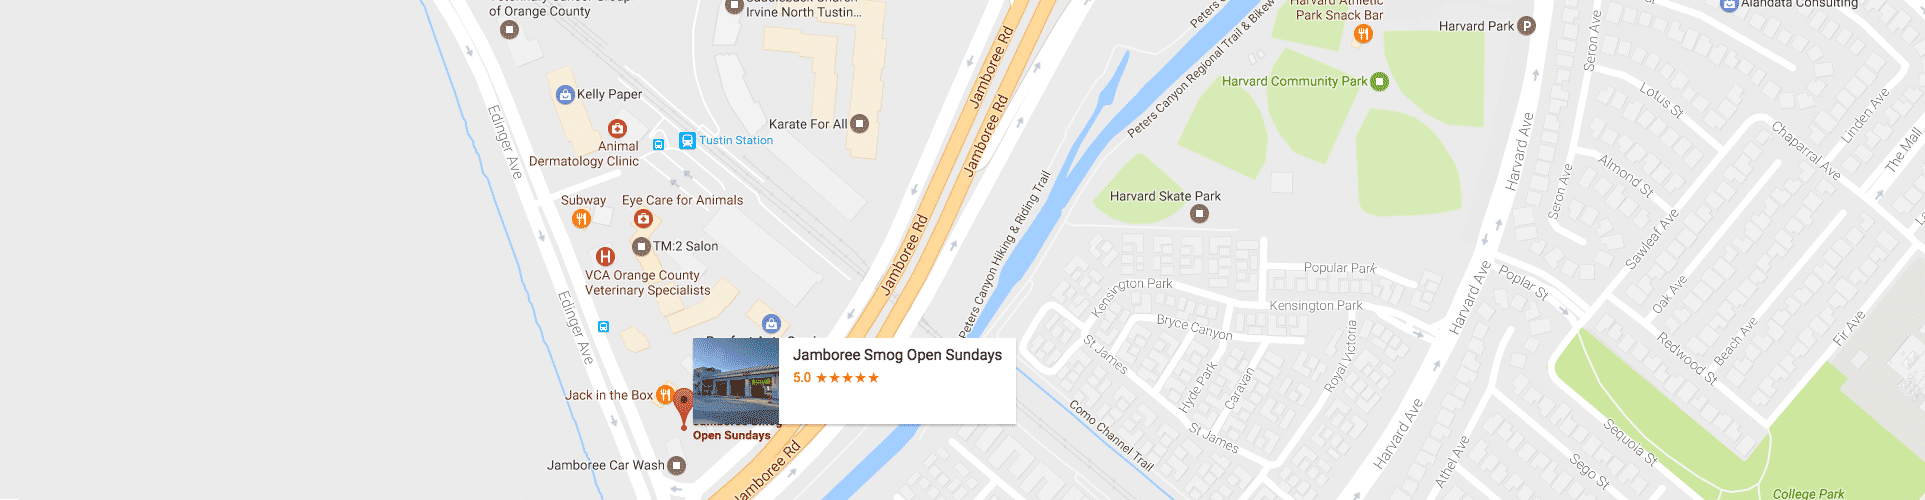 Conveniently located near the Tustin Metrolink Station